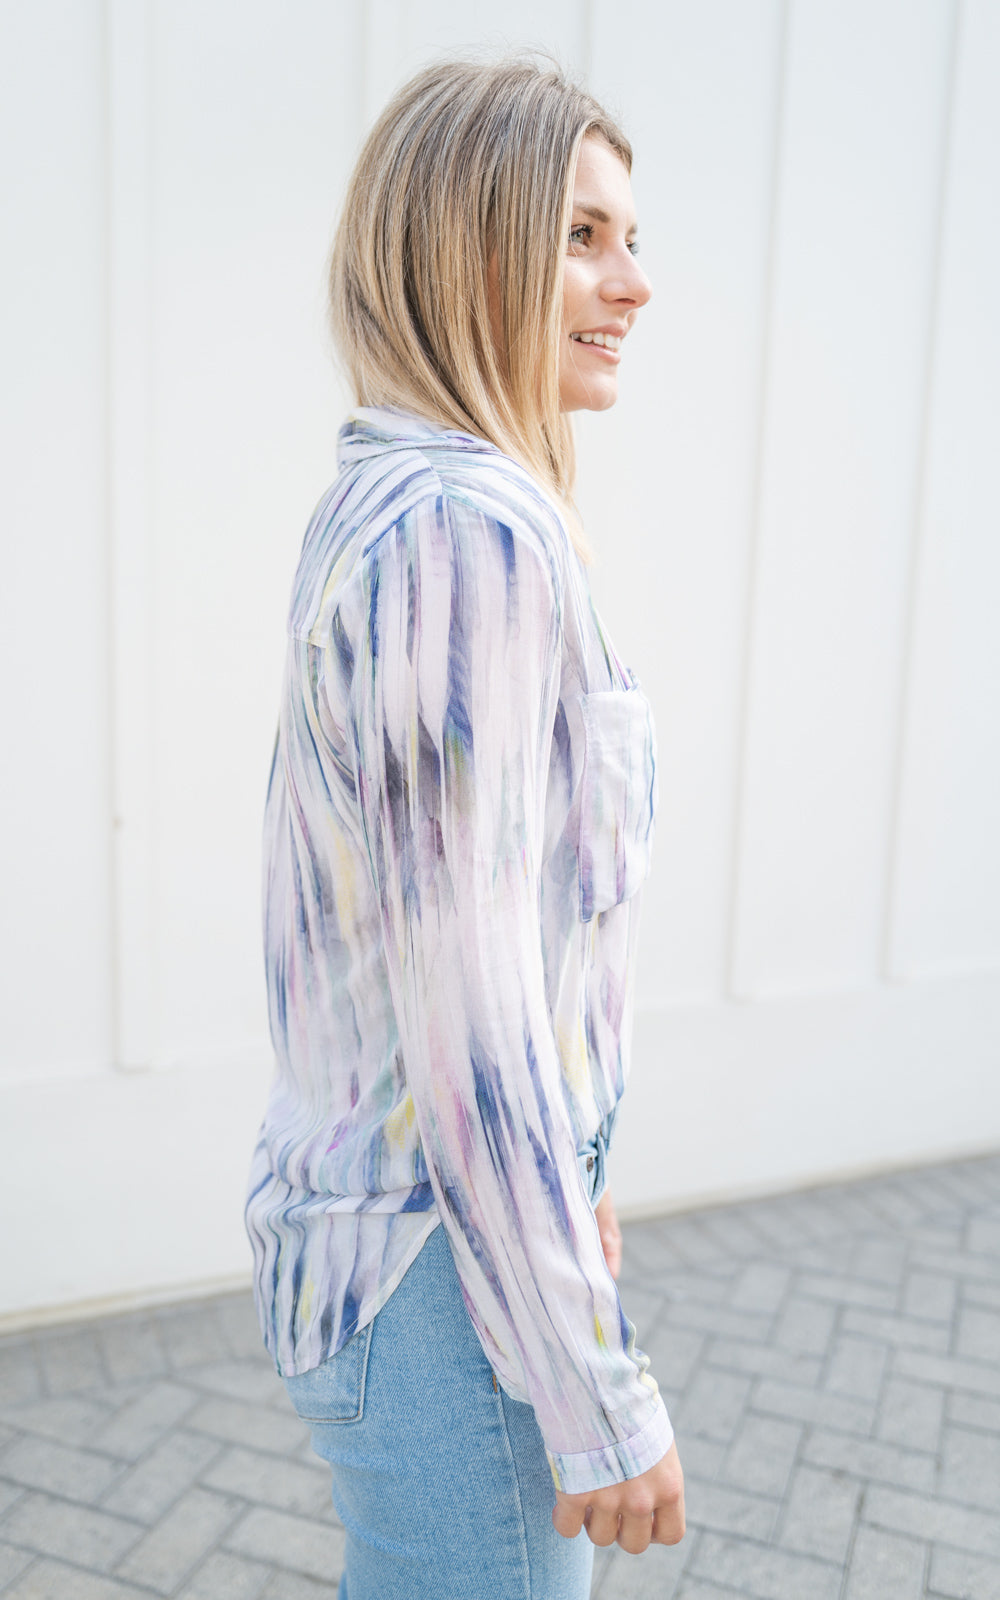 Feathered top by bella dahl